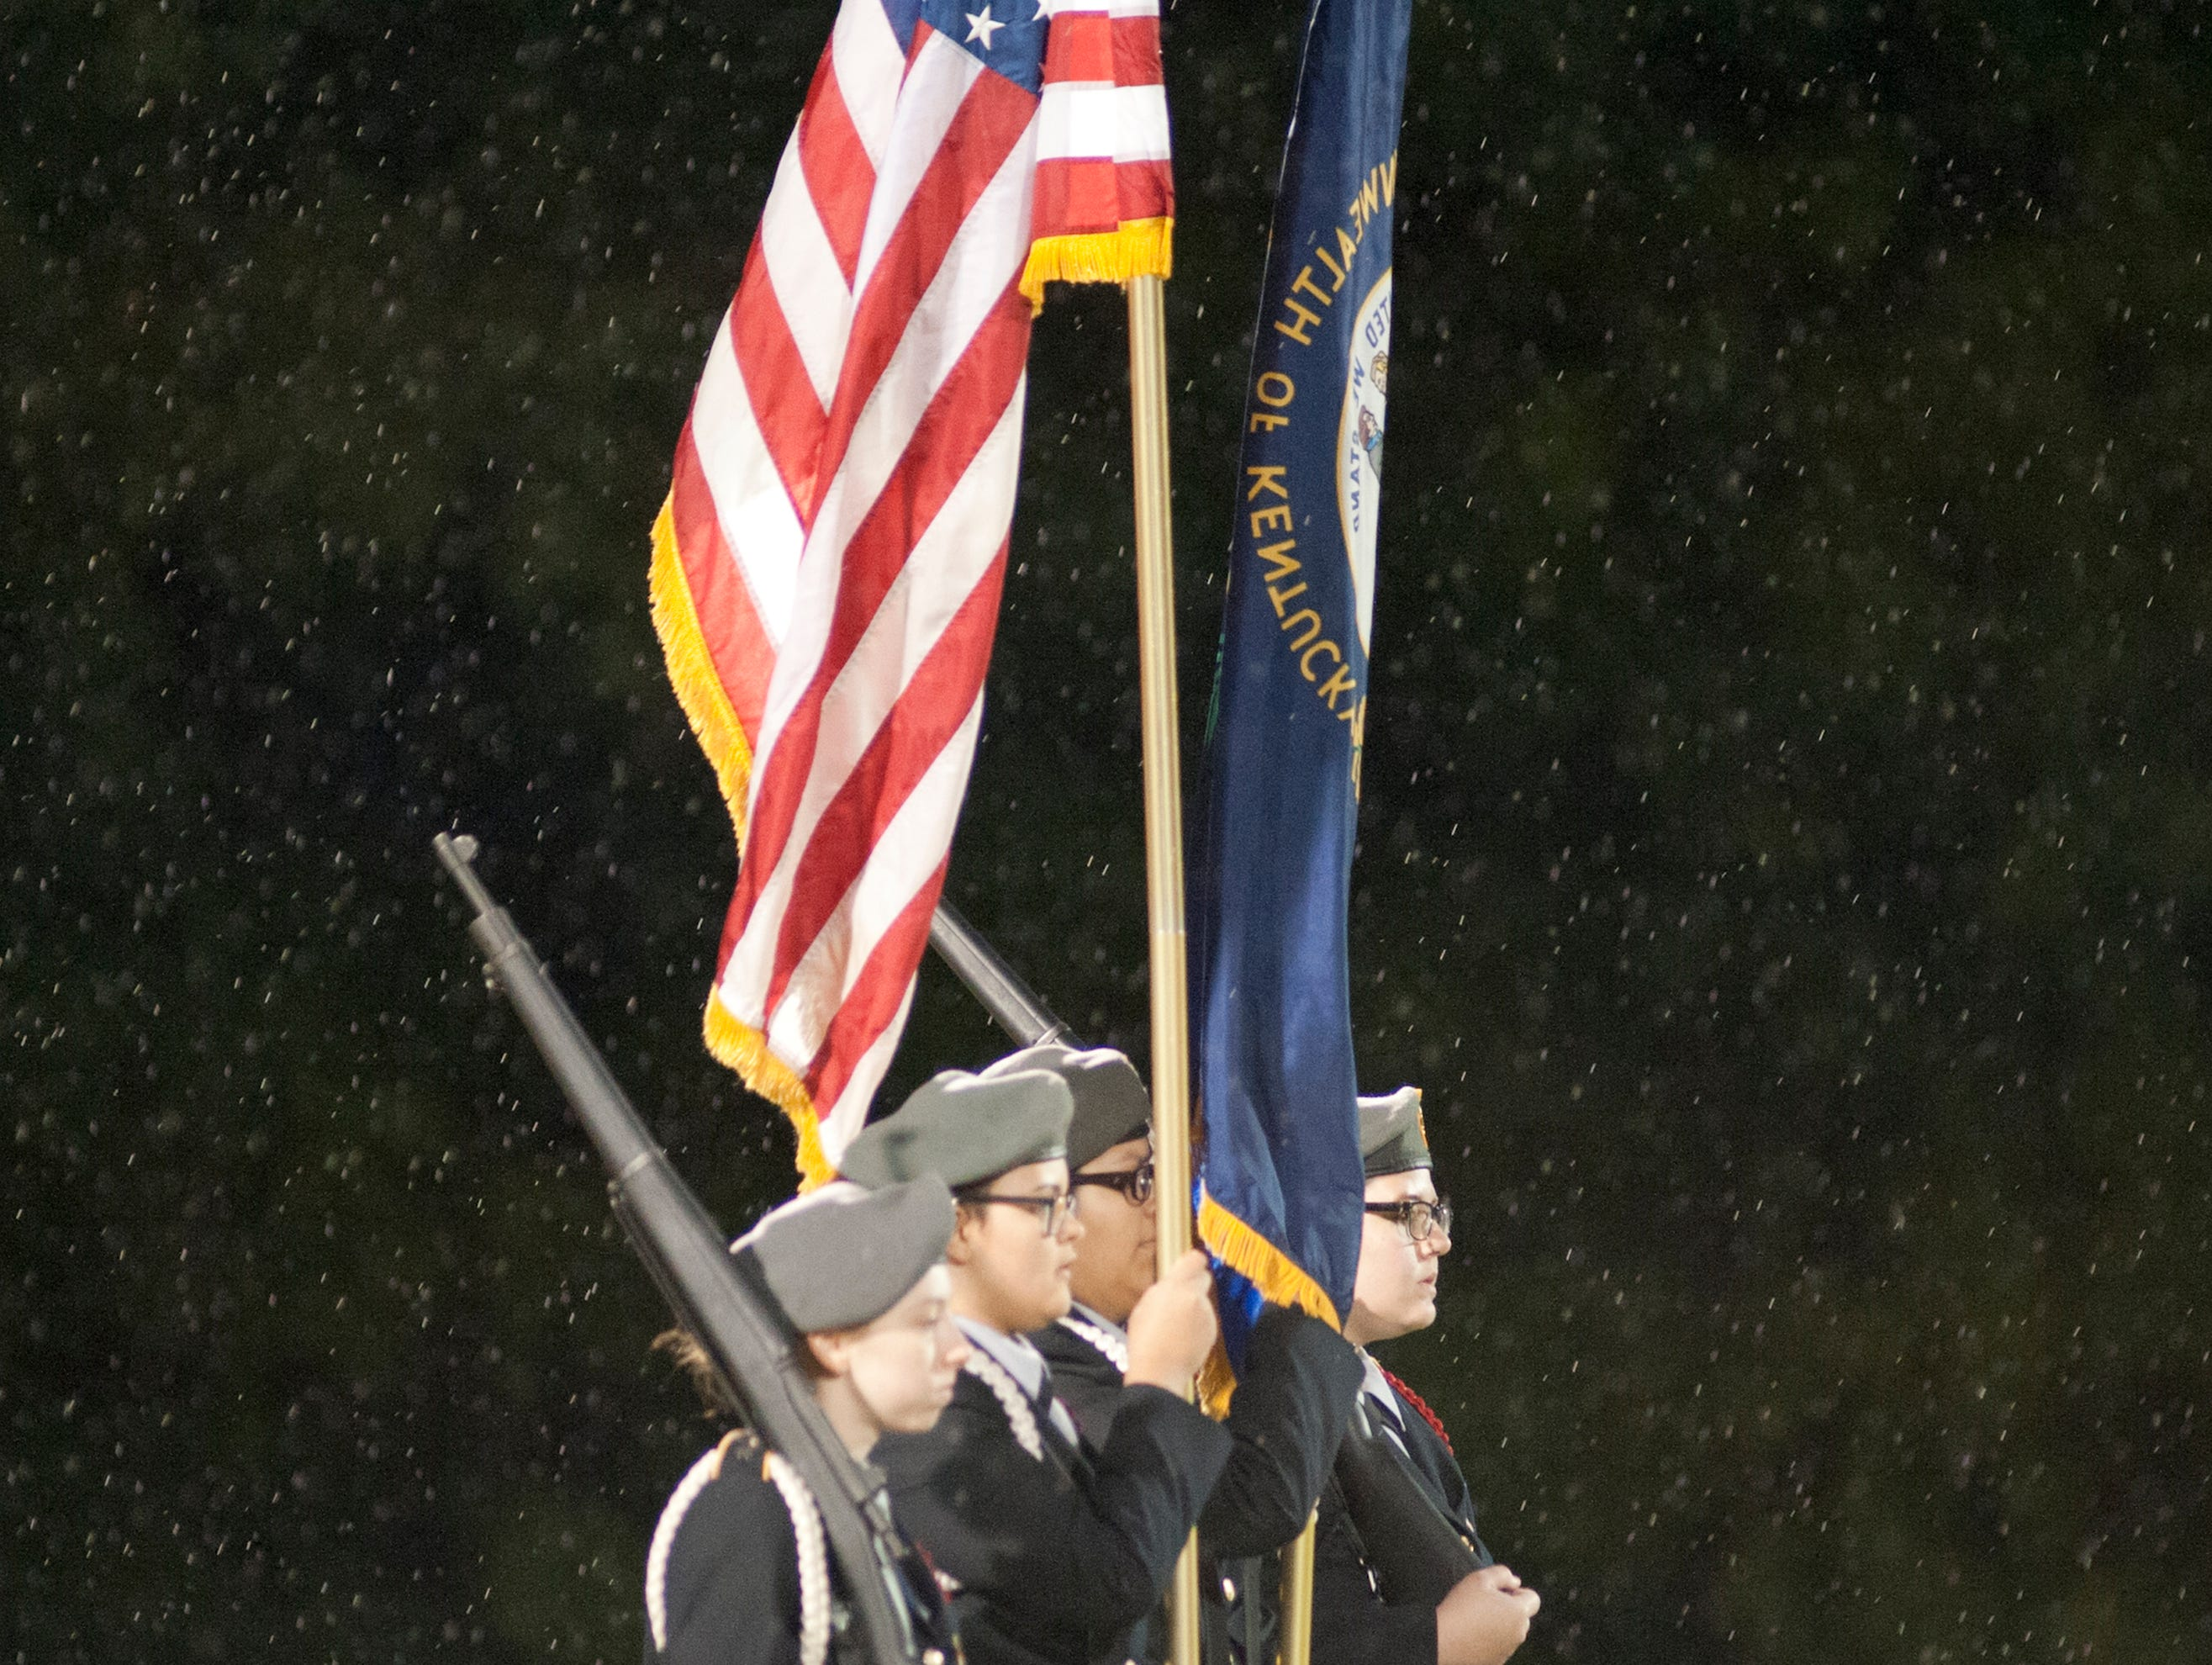 The Bullitt Central Junior Army ROTC honor guard marches onto the field in the pouring rain. Oct. 12, 2018